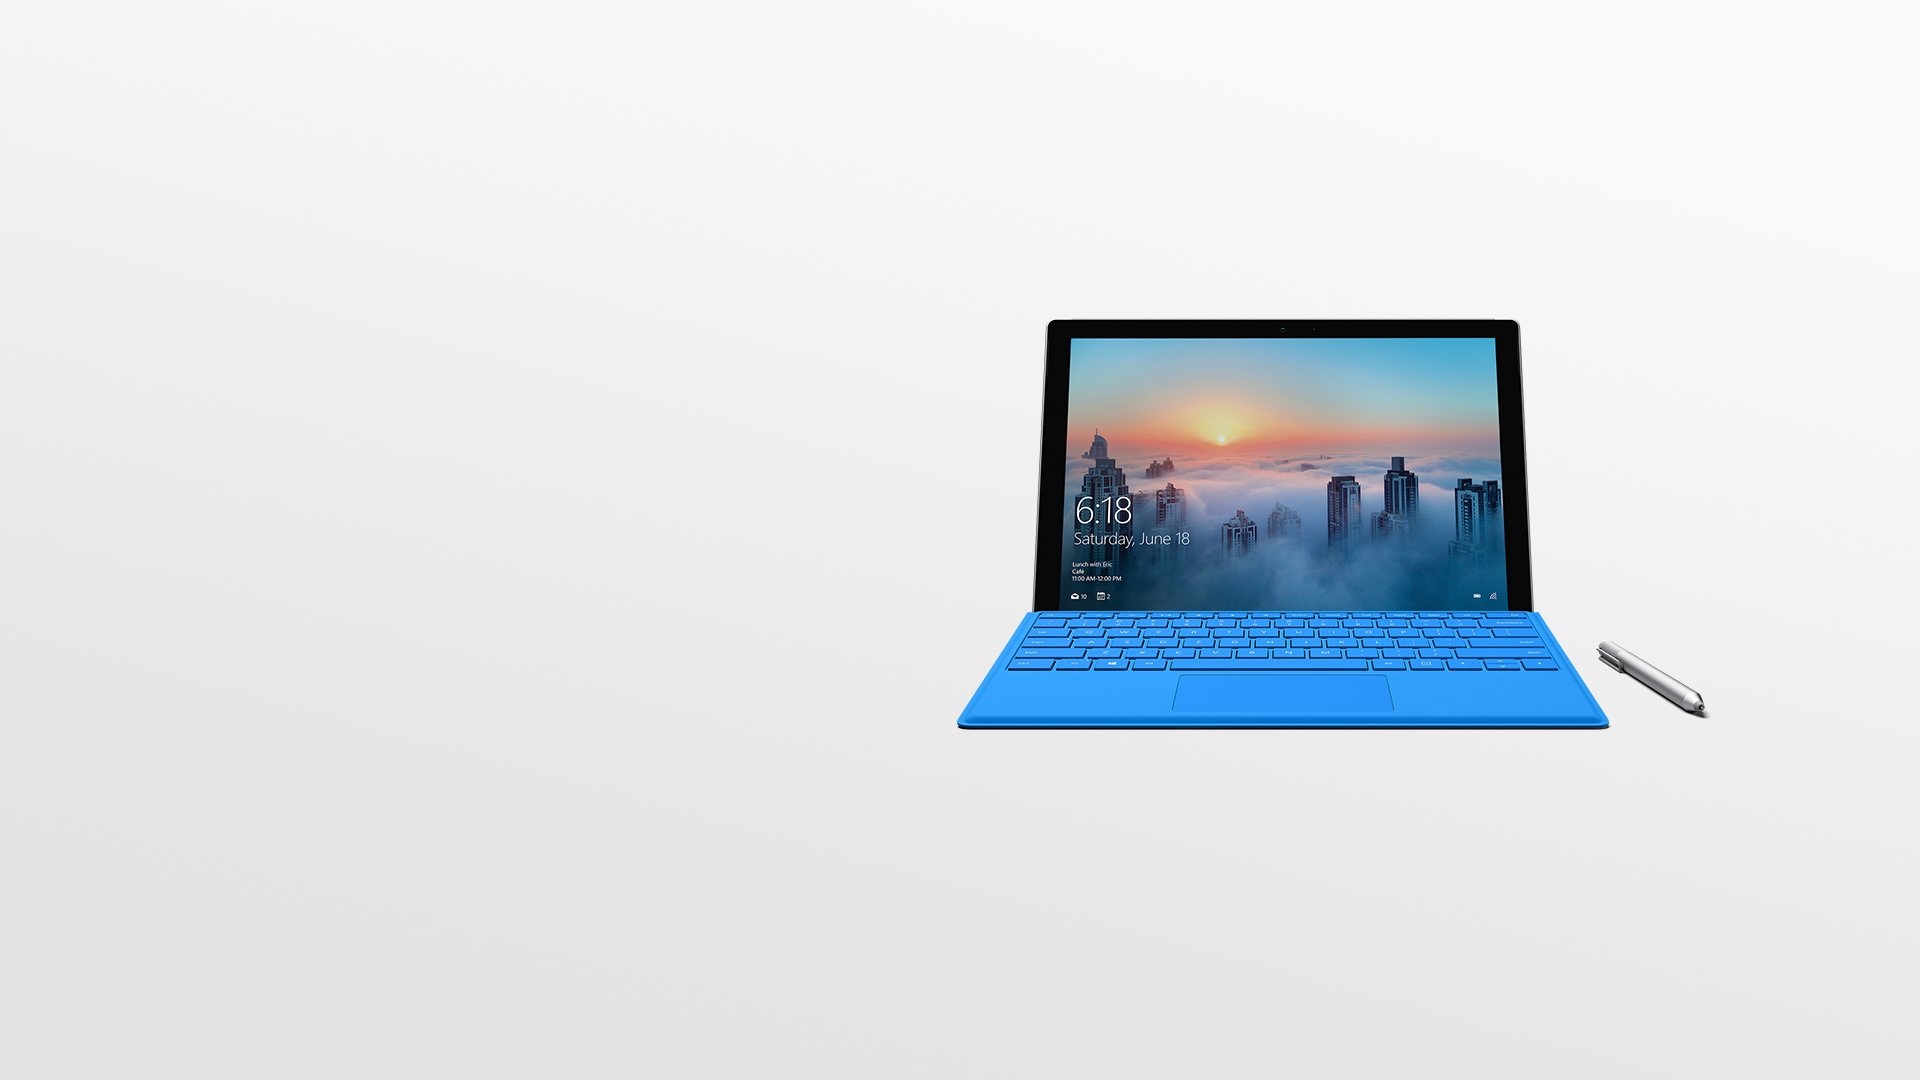 Surface Pro 4 with Surface Pen.